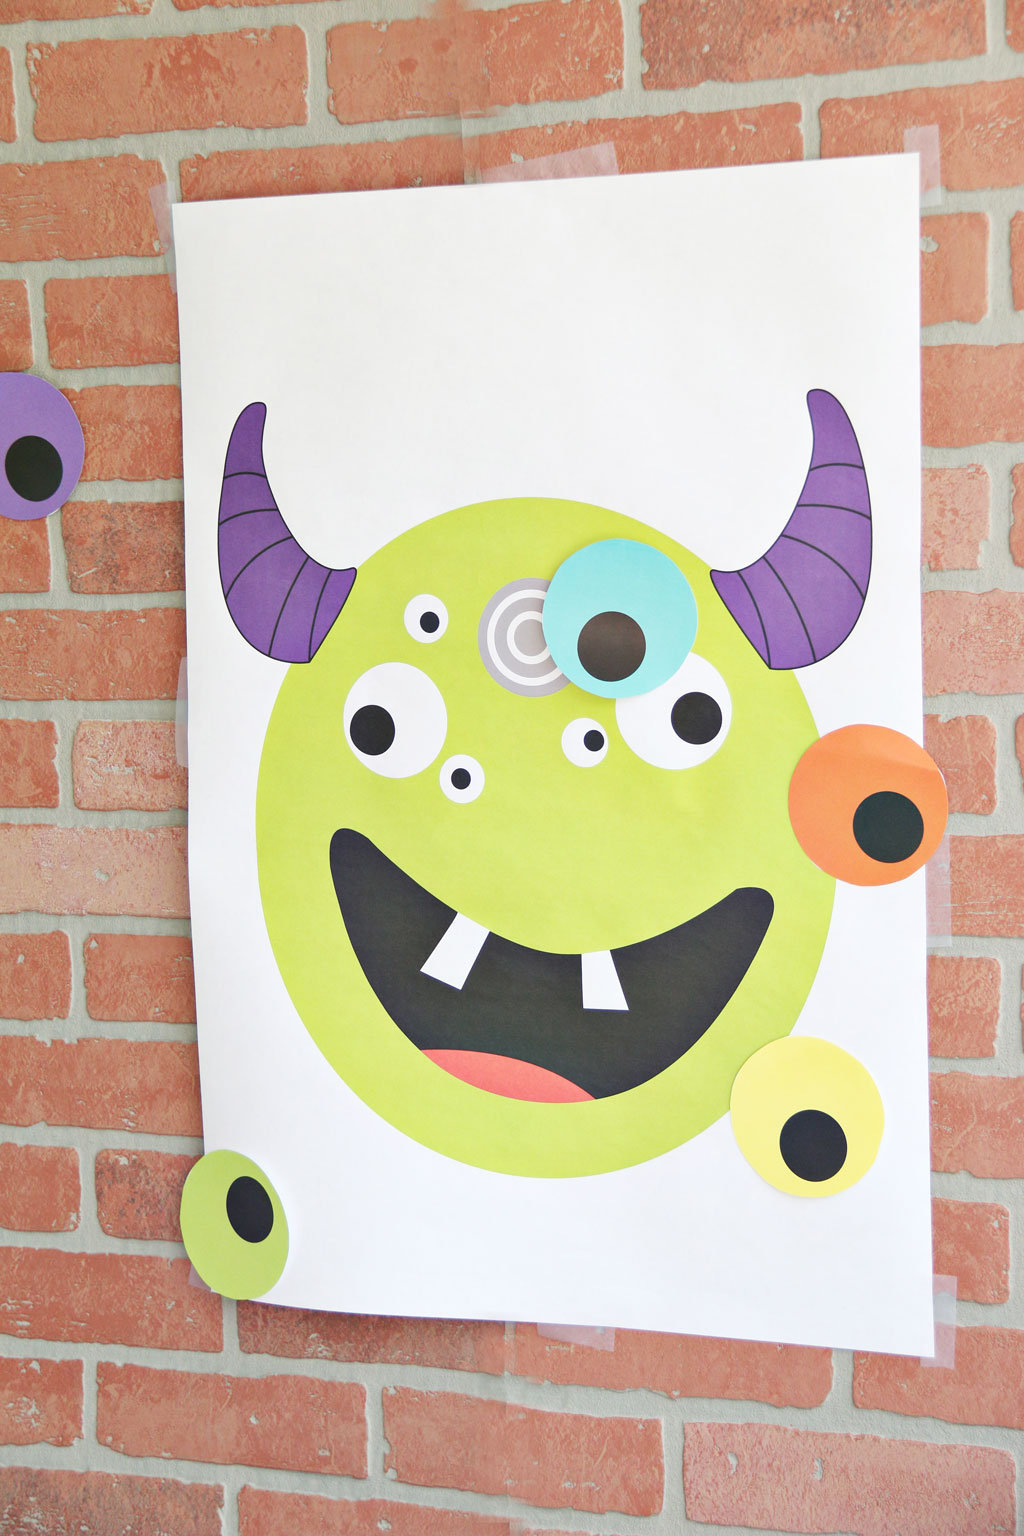 Pin the eye on the monster halloween game for kids